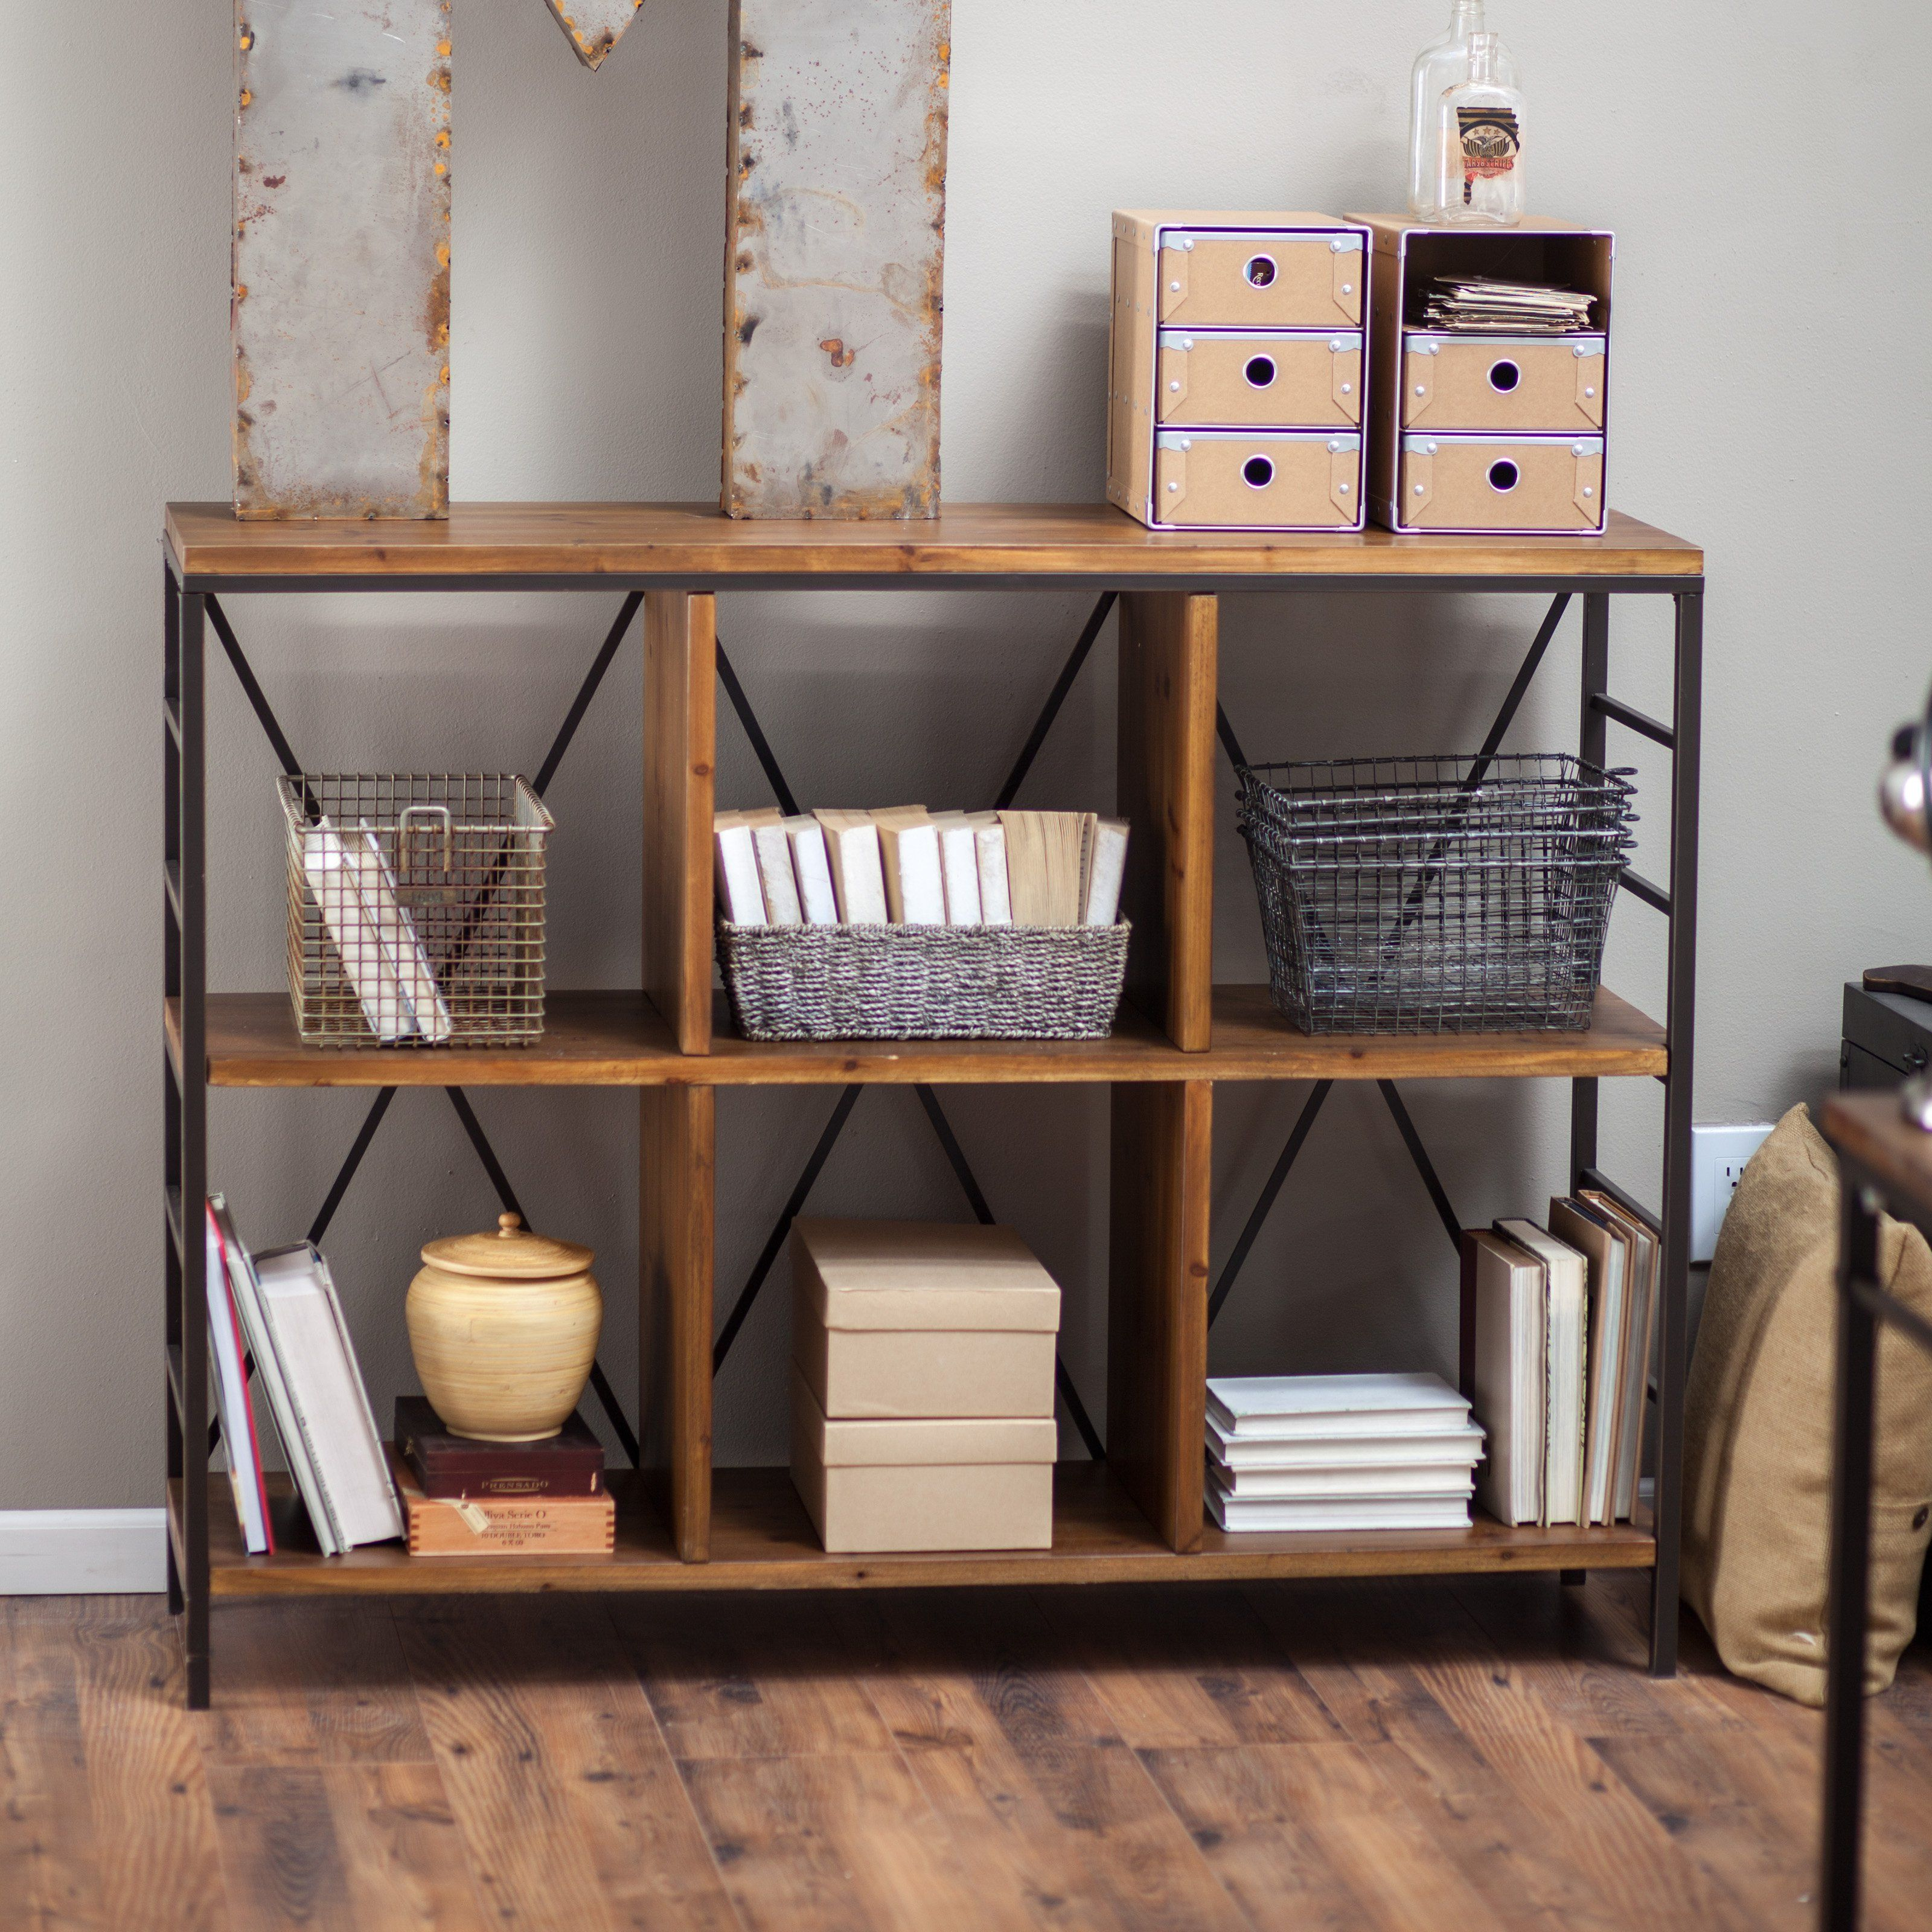 ne house kids bookcases home product bookcase overstock white garden horizontal today school cherry free shipping